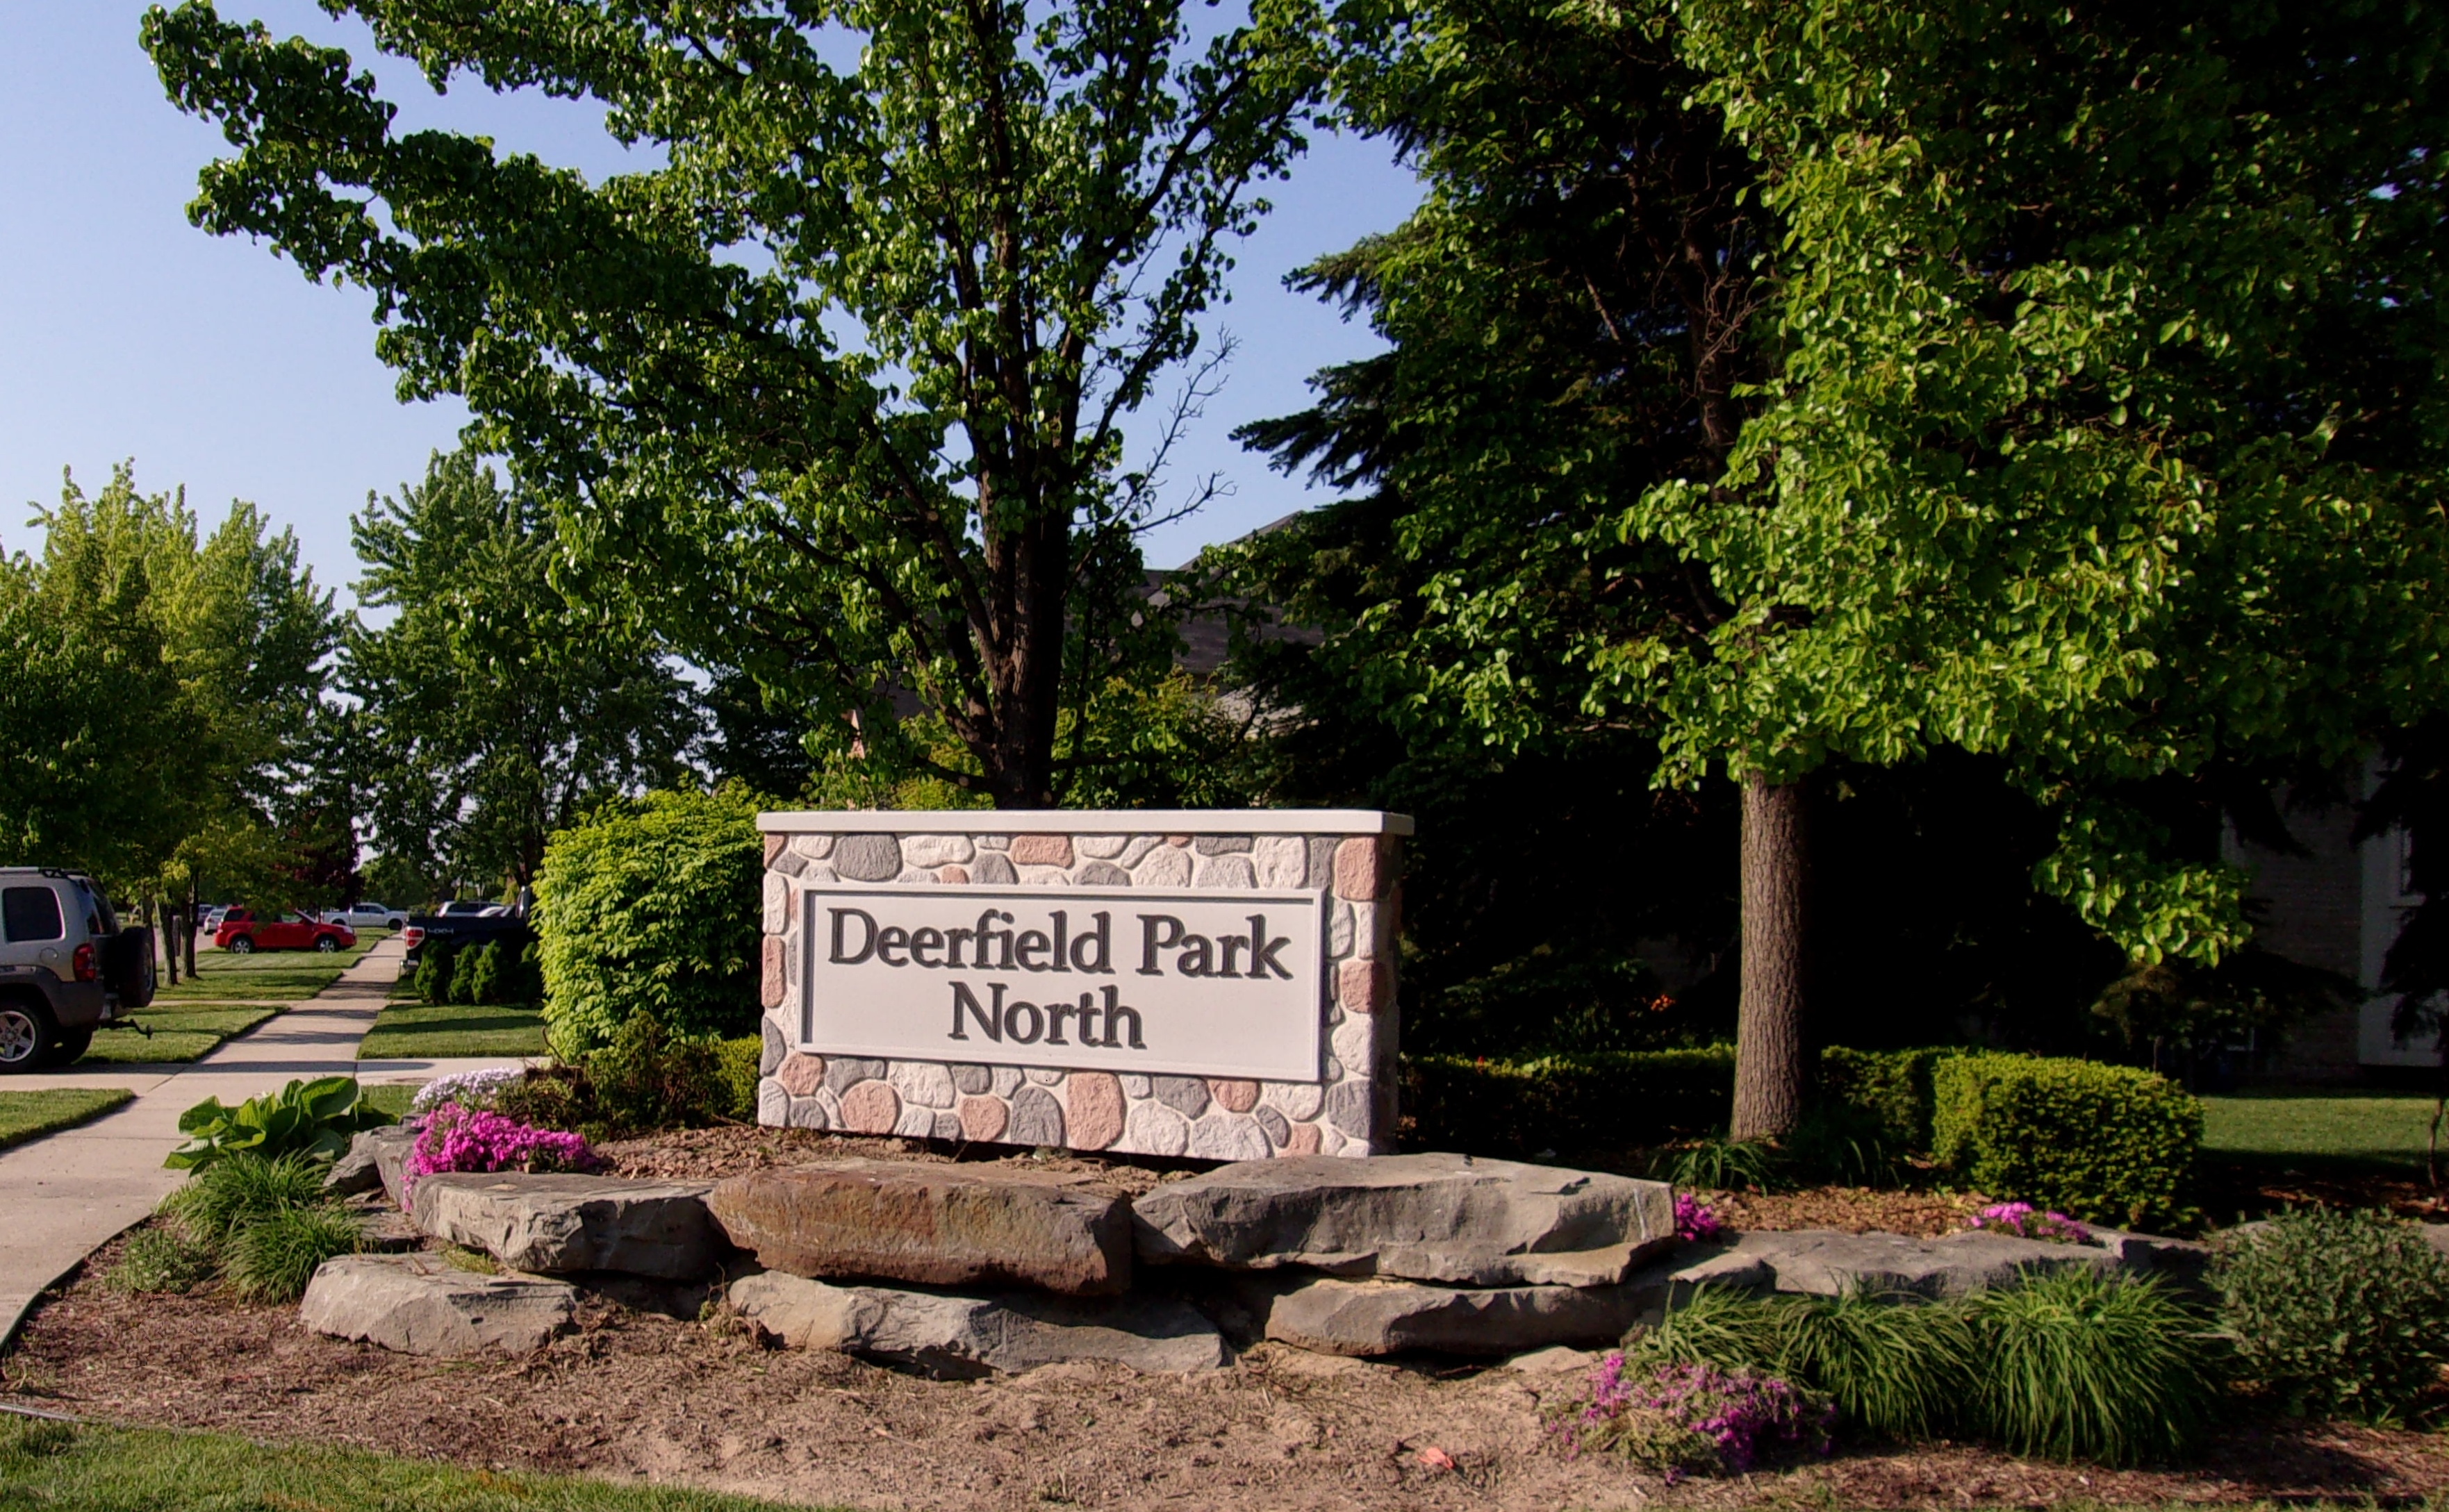 Deerfield Park North - Macomb Township